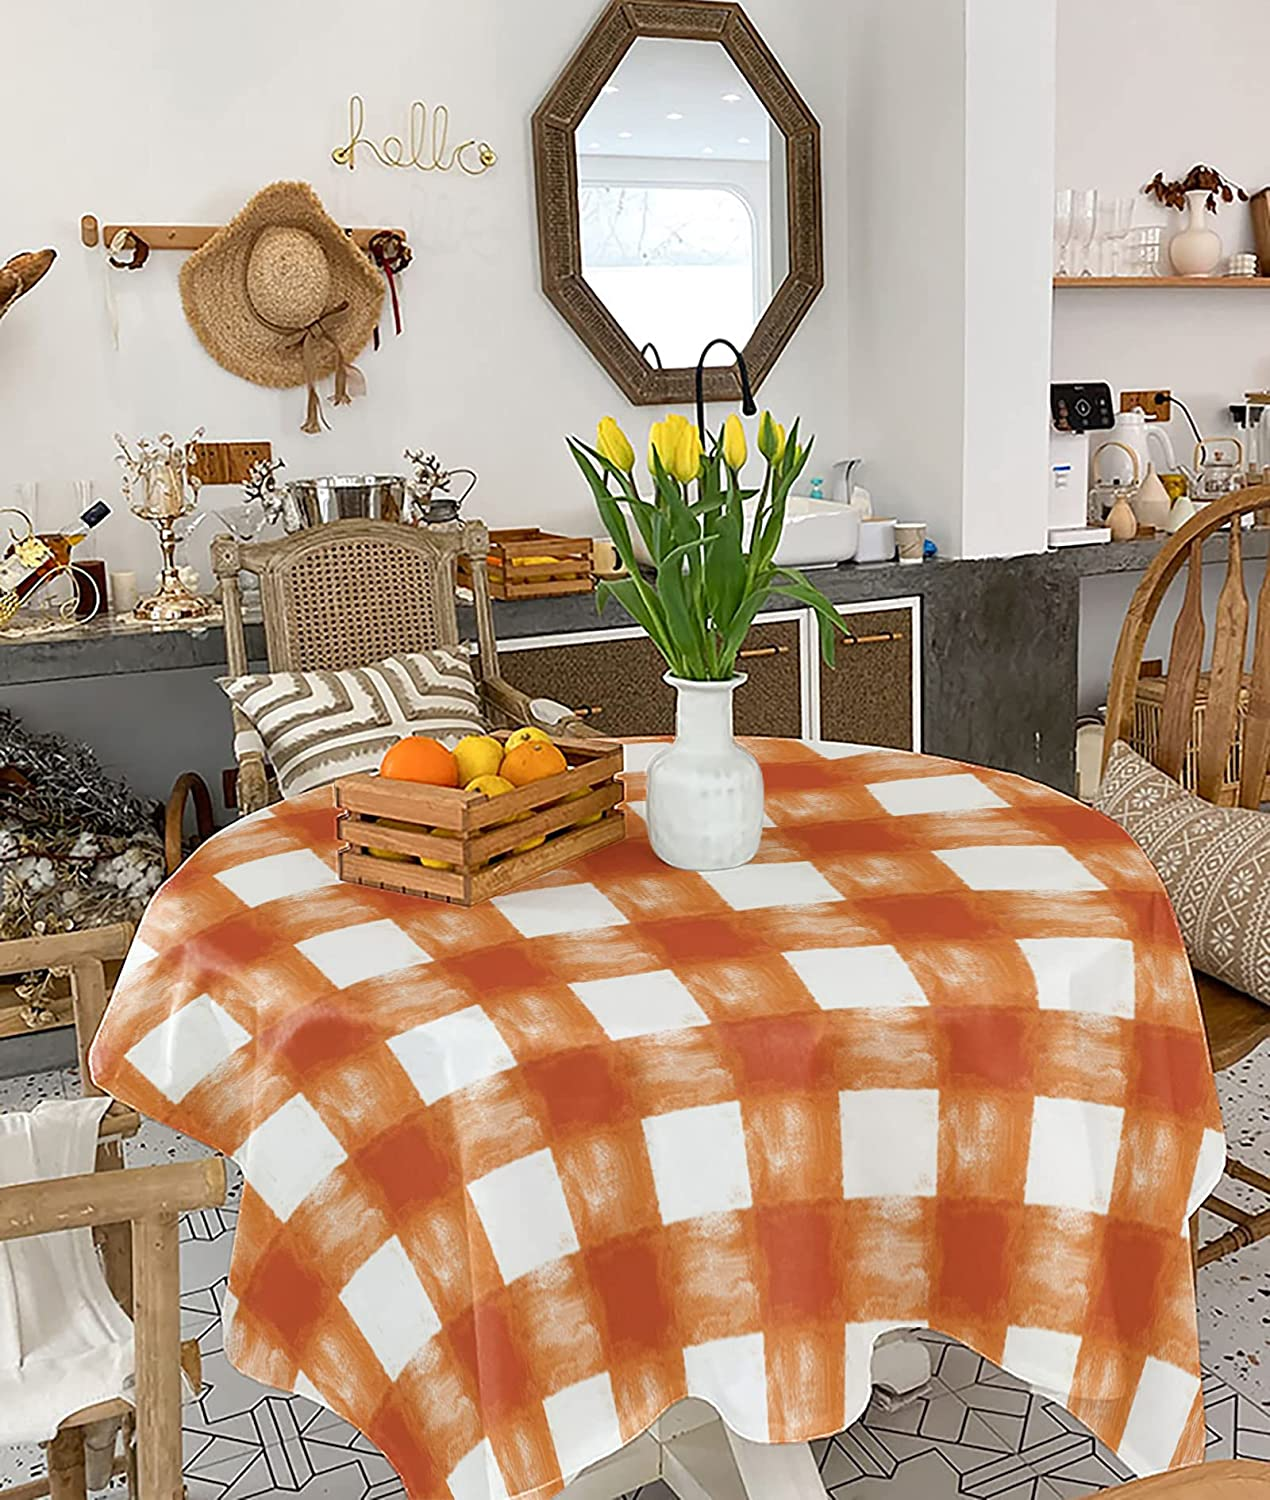 Square Tablecloth 54x54 inch Cotton Over item handling Rustic Max 80% OFF Heatproof Waterproof